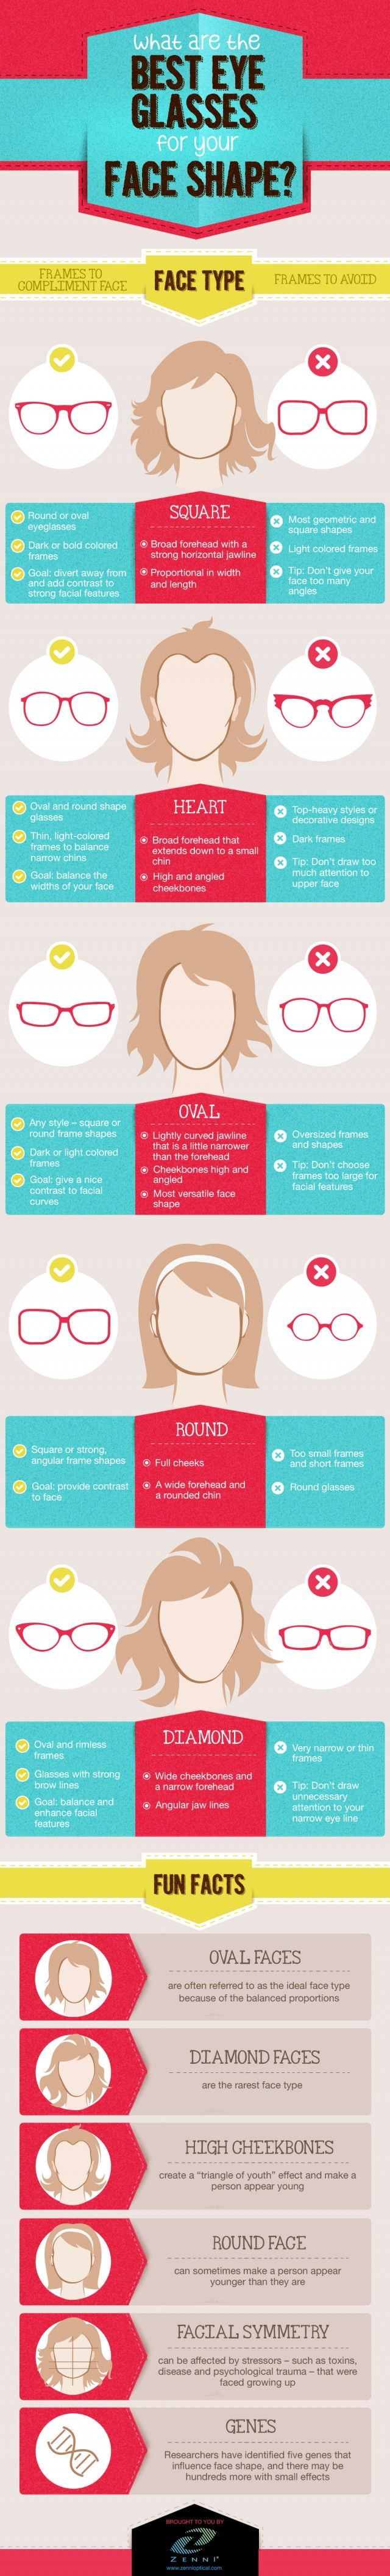 What are the best shape glasses for your face?